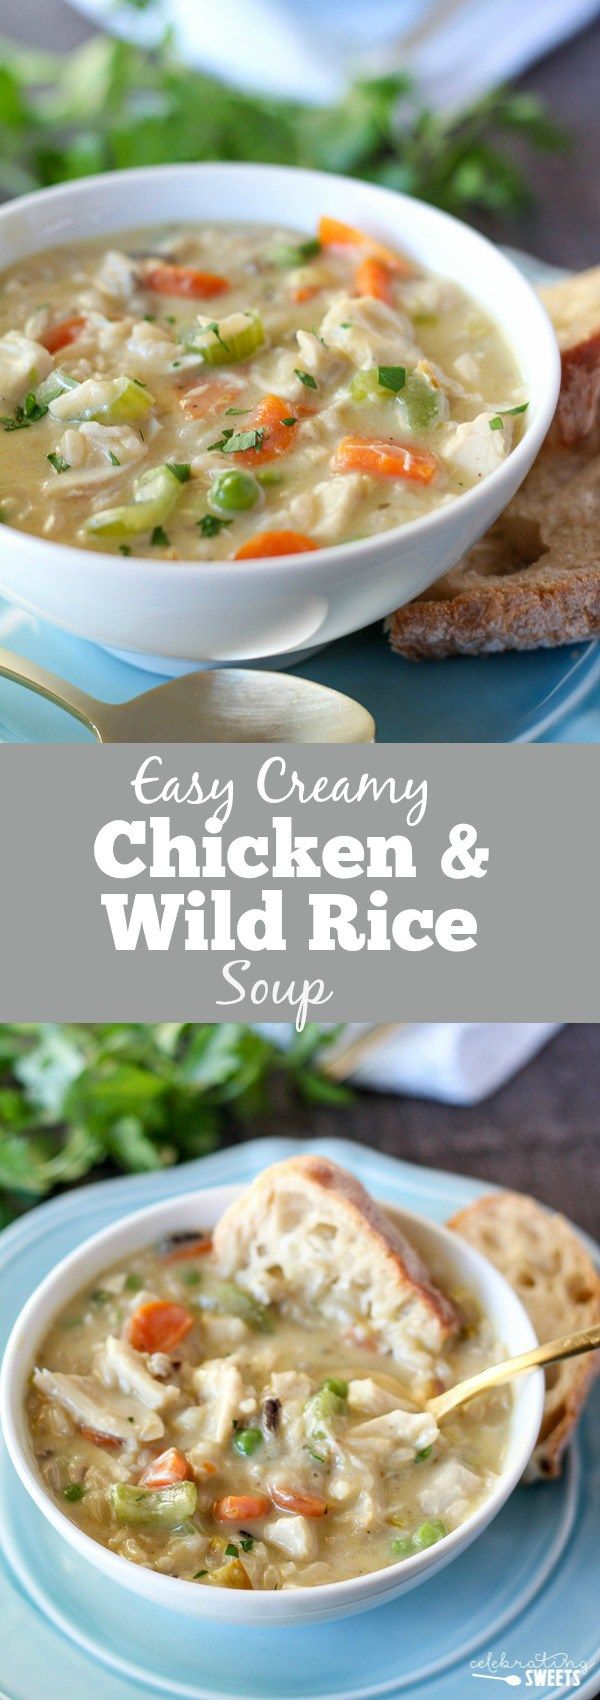 Creamy Chicken and Wild Rice Soup - The easiest homemade Creamy Chicken and…